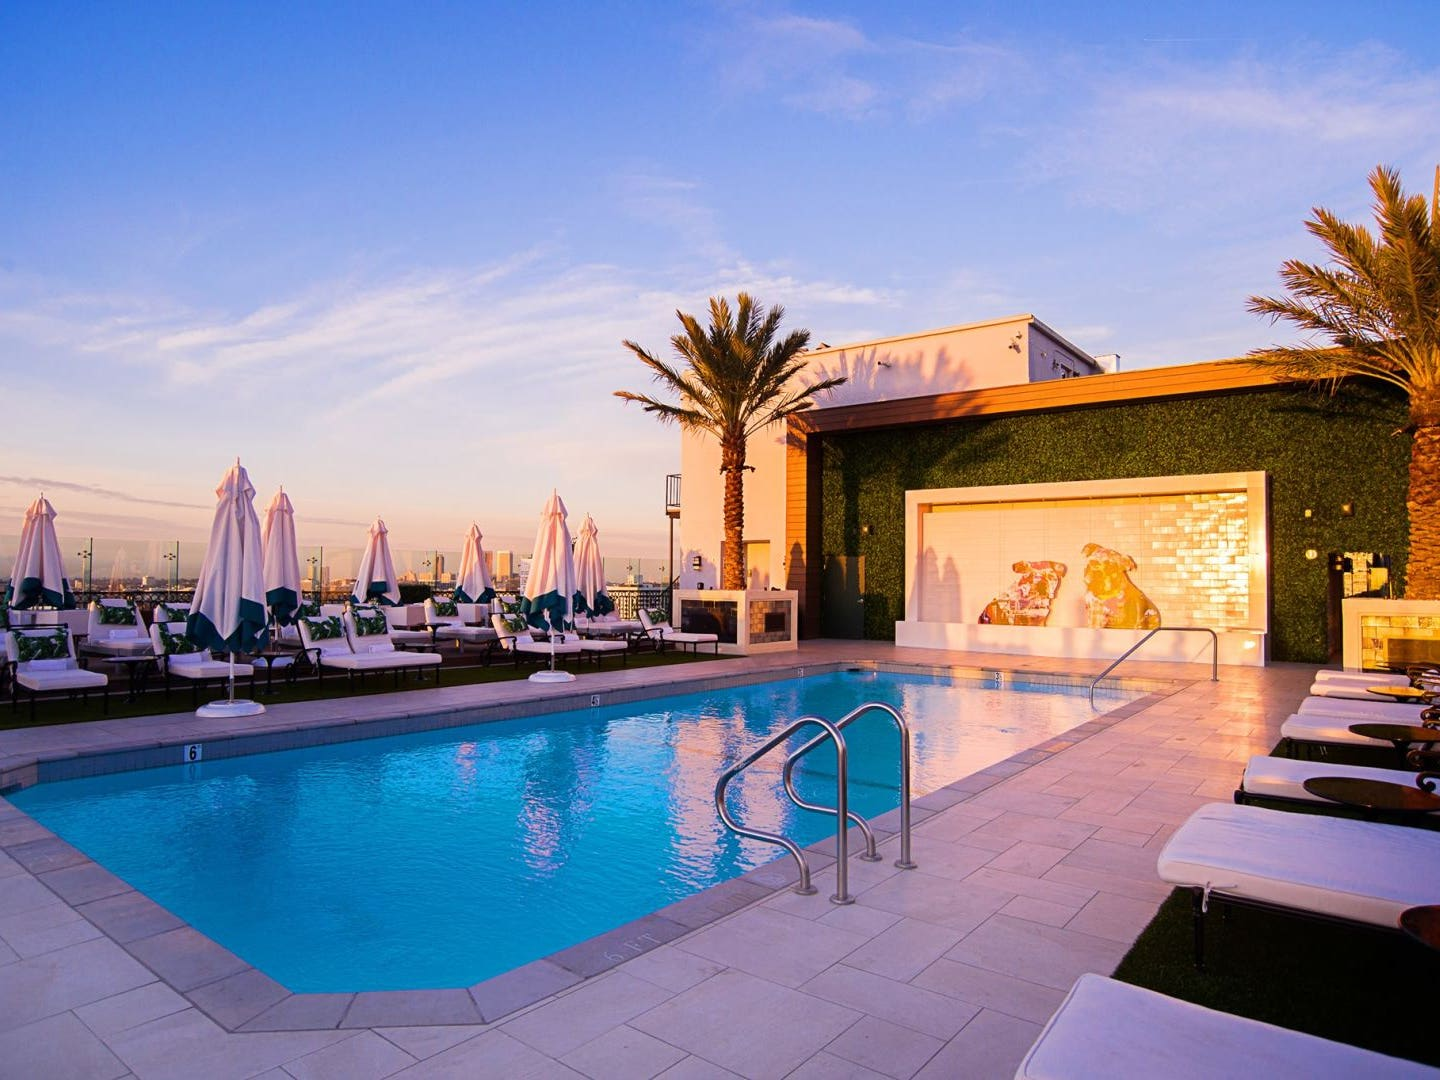 The London West Hollywood rooftop pool at sunset